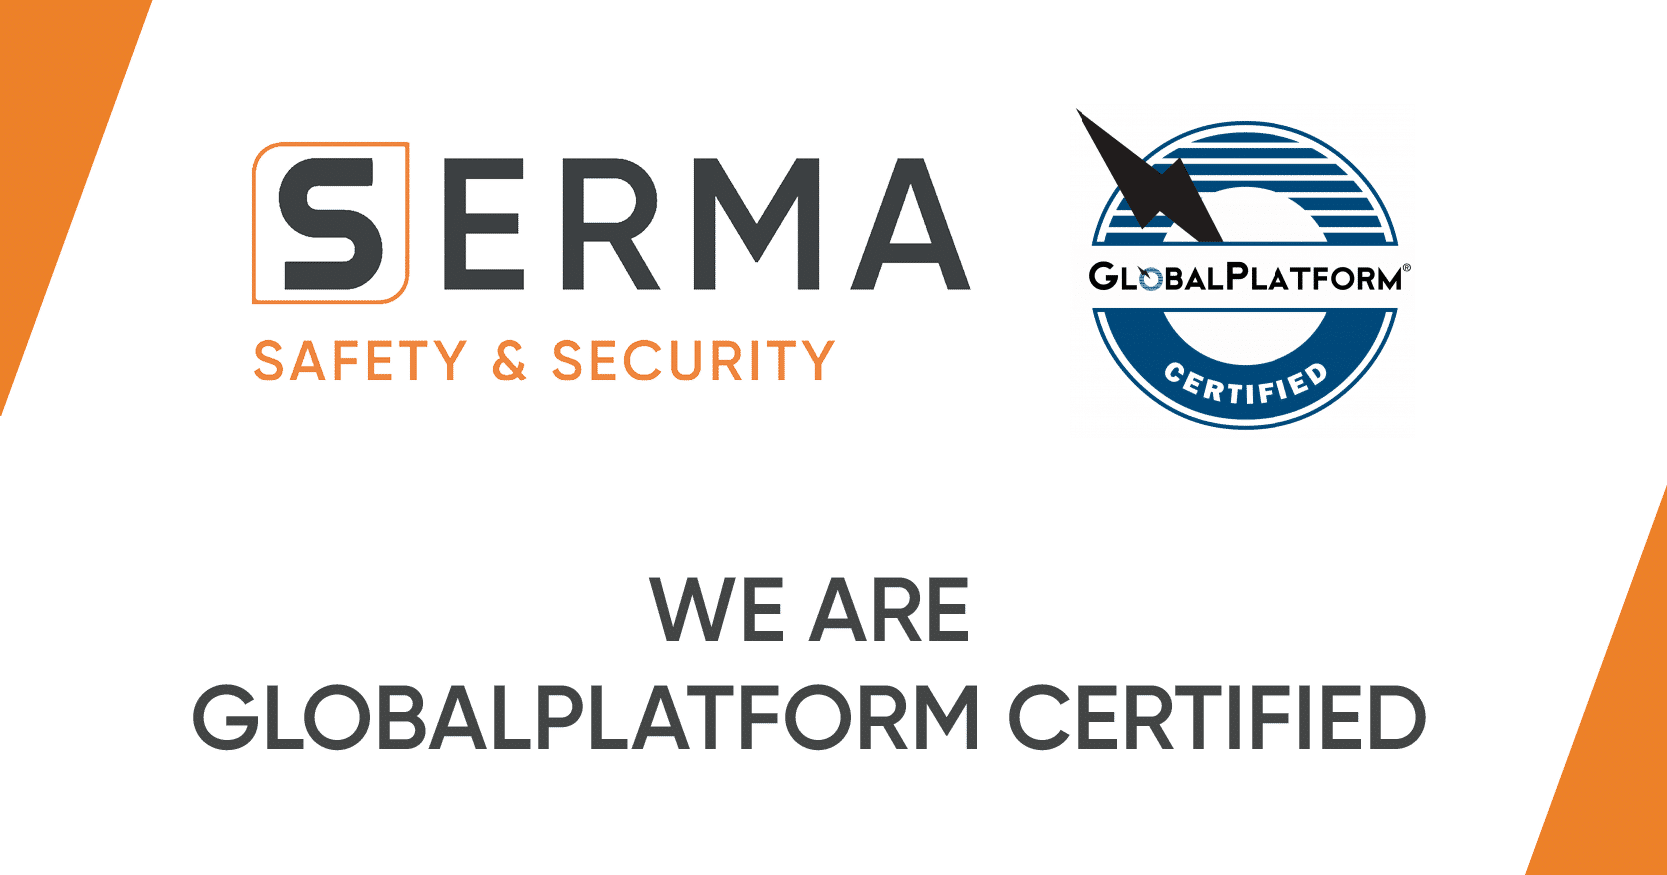 SERMA Safety and Security is GlobalPlatform Certified